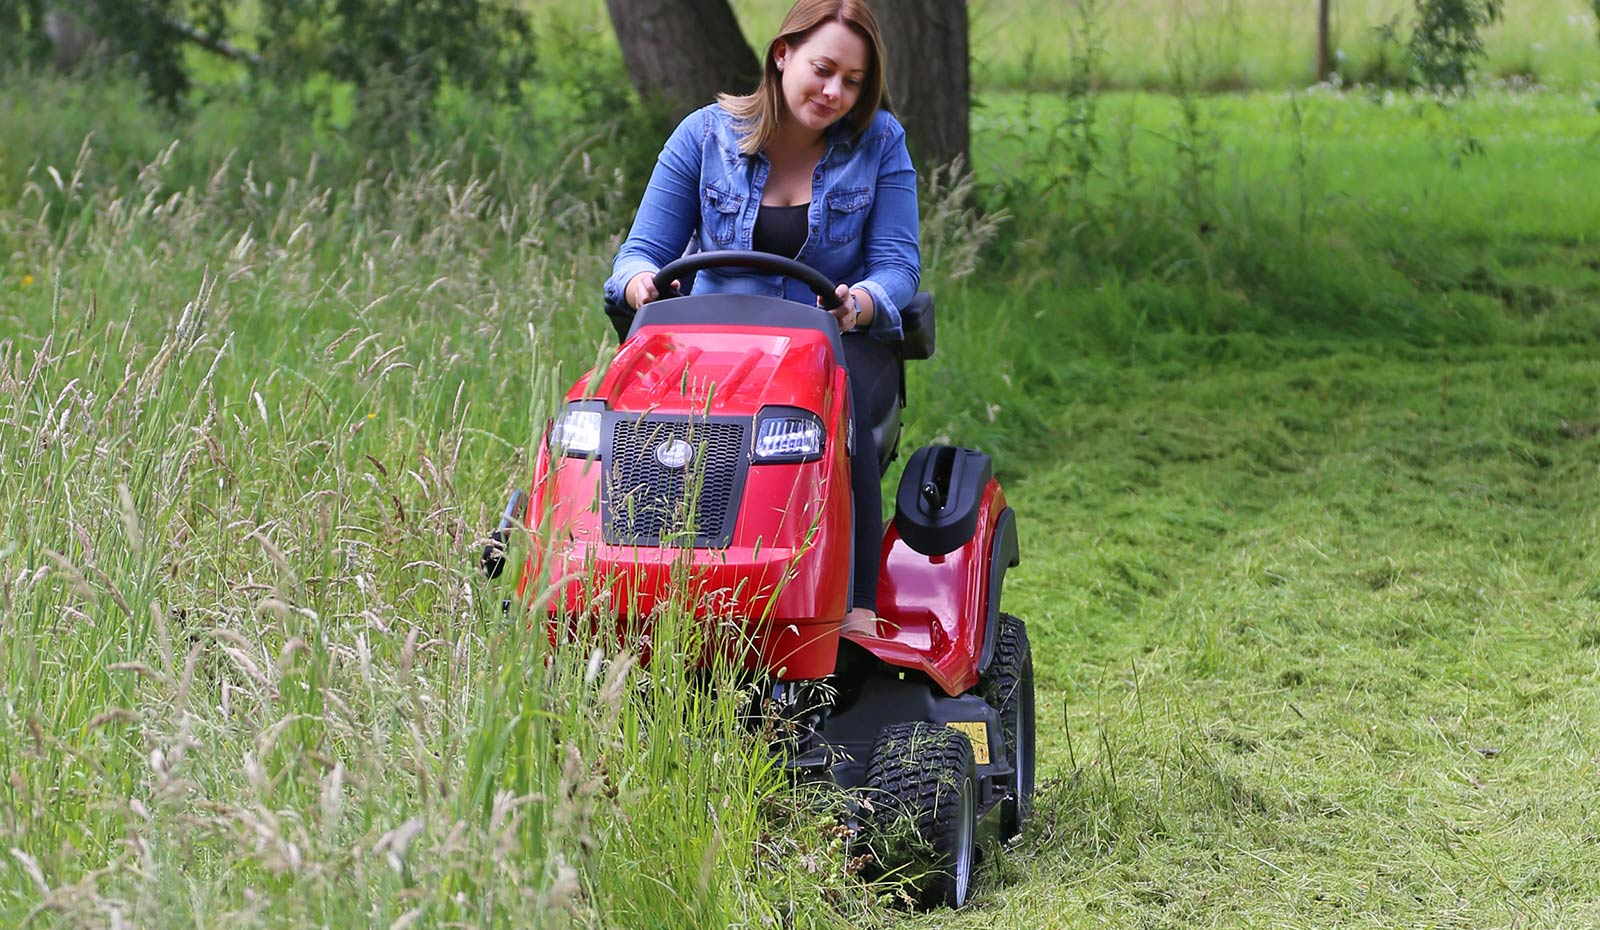 Countax B Series 4WD garden tractor ride on mower with HGM cutter deck cutting tall grass